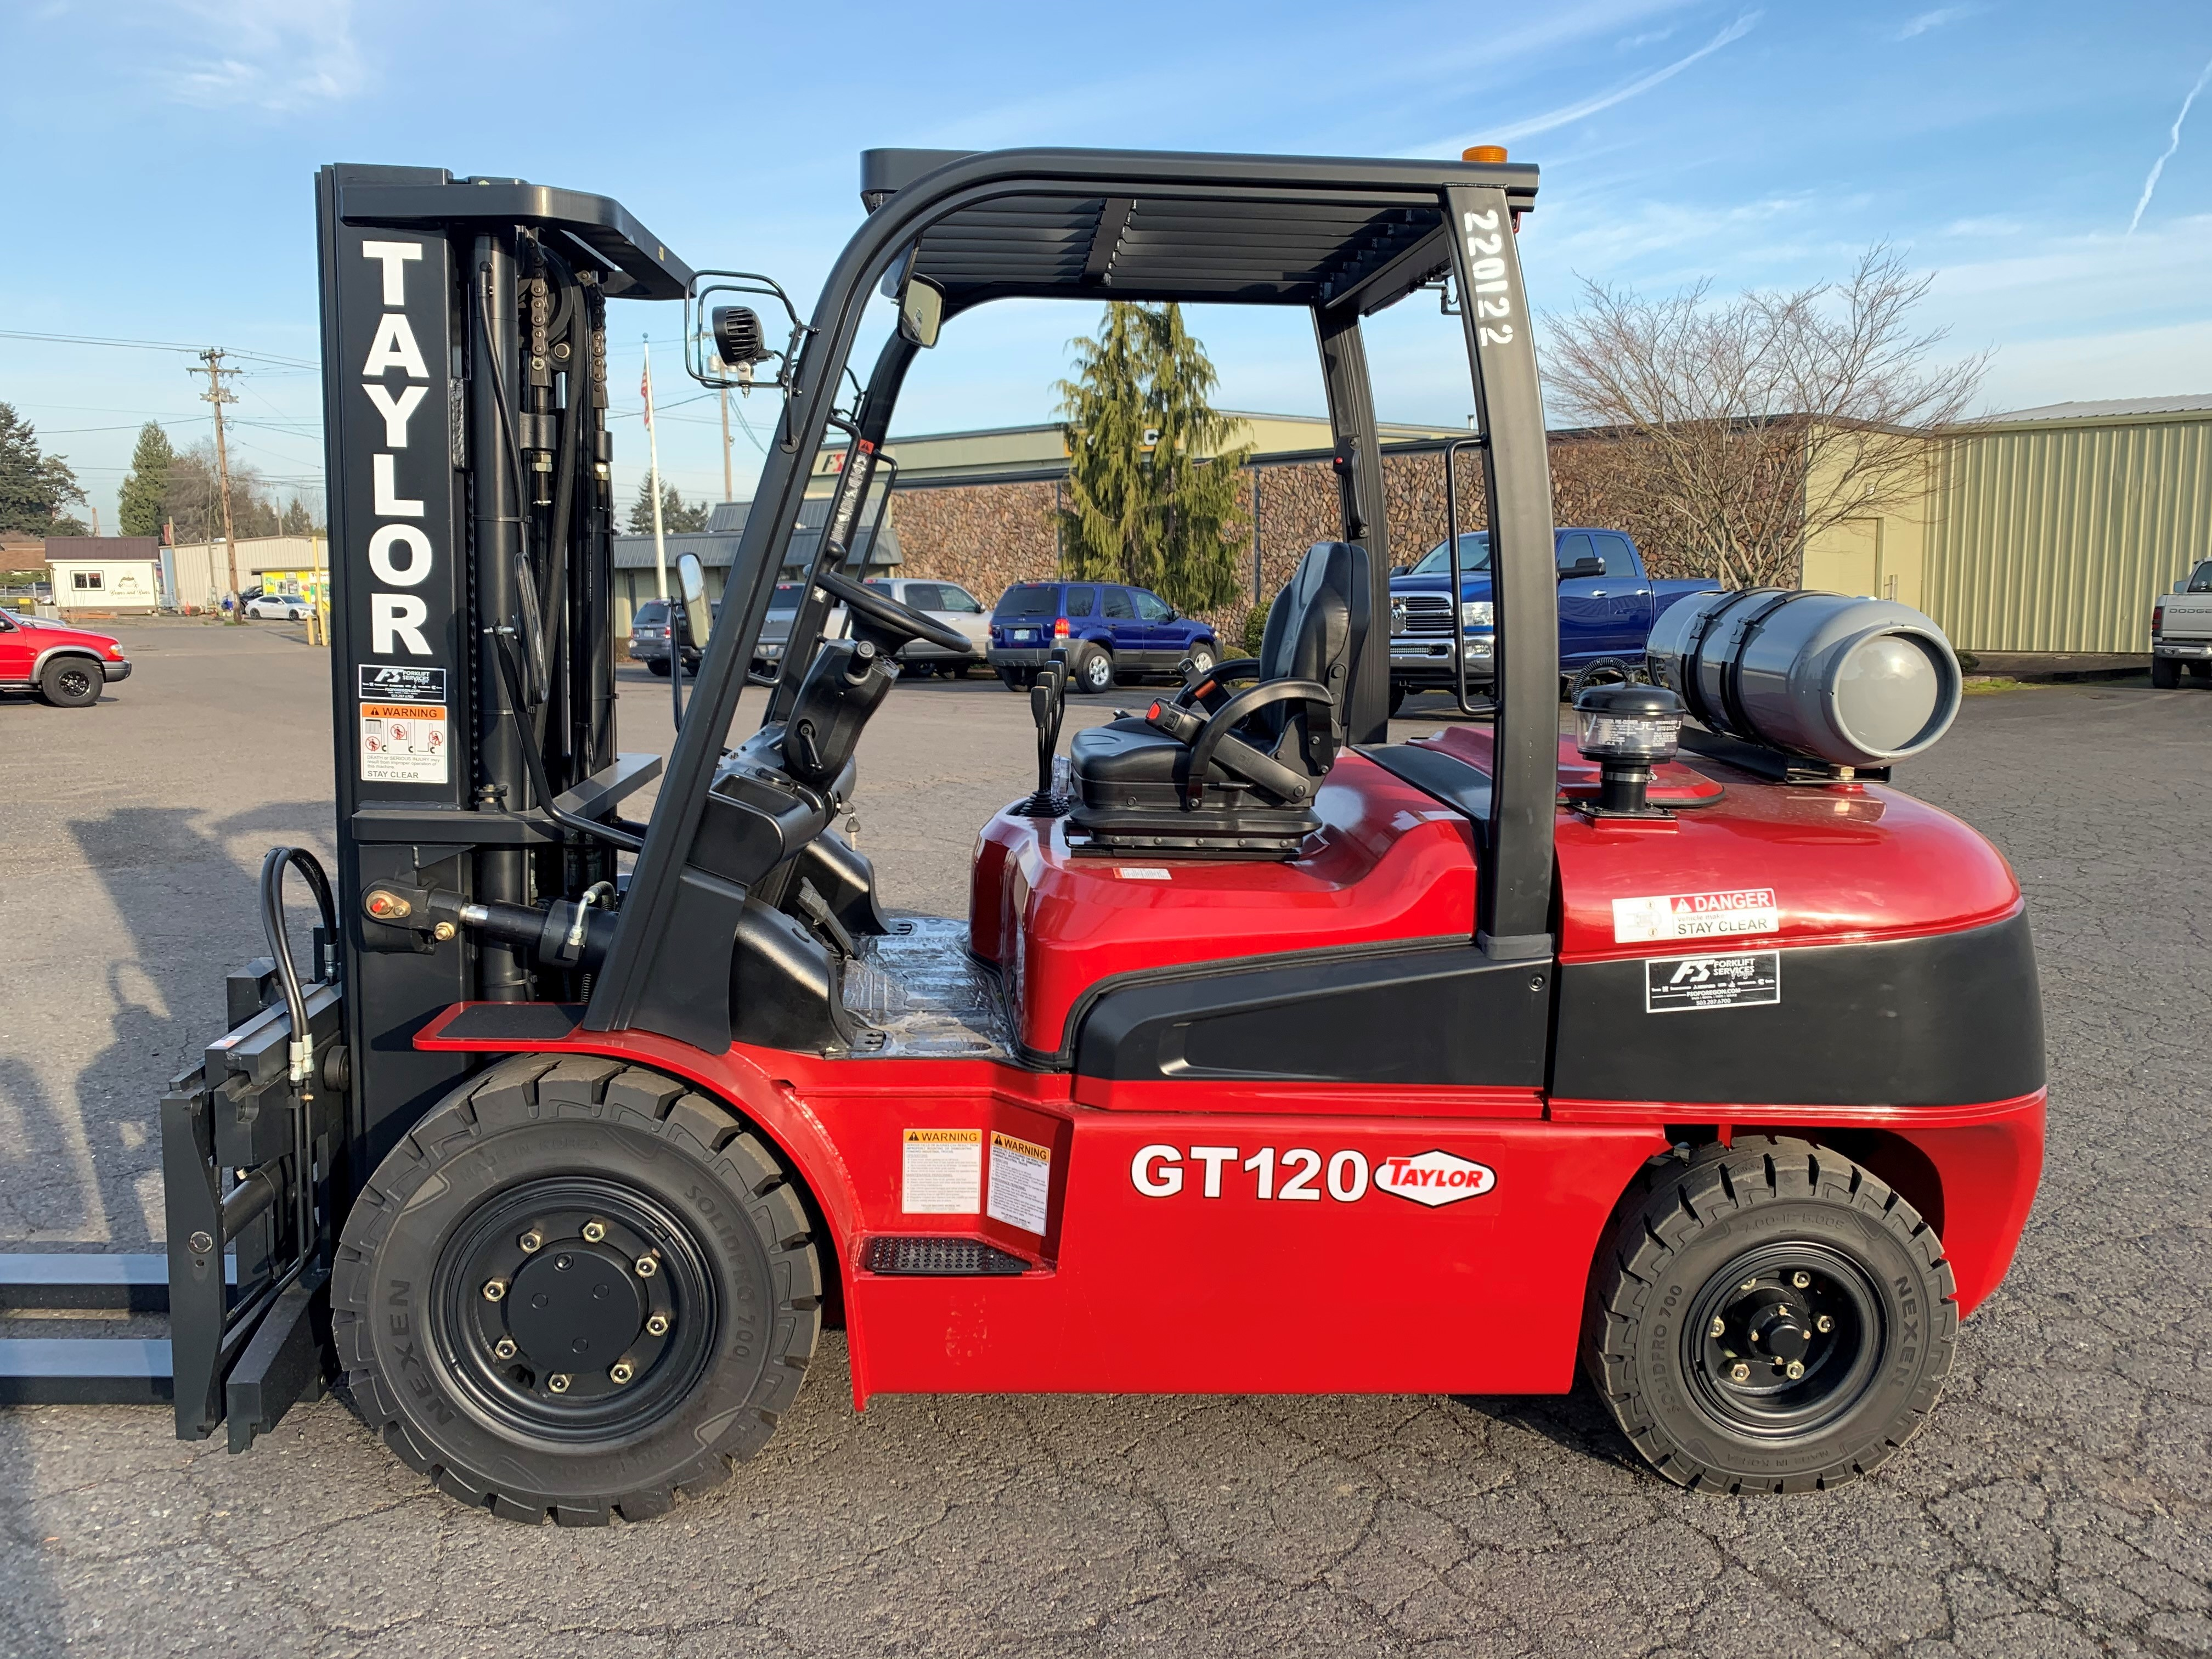 New, 2020, Taylor, GT120  (4 valve), Forklifts / Lift Trucks